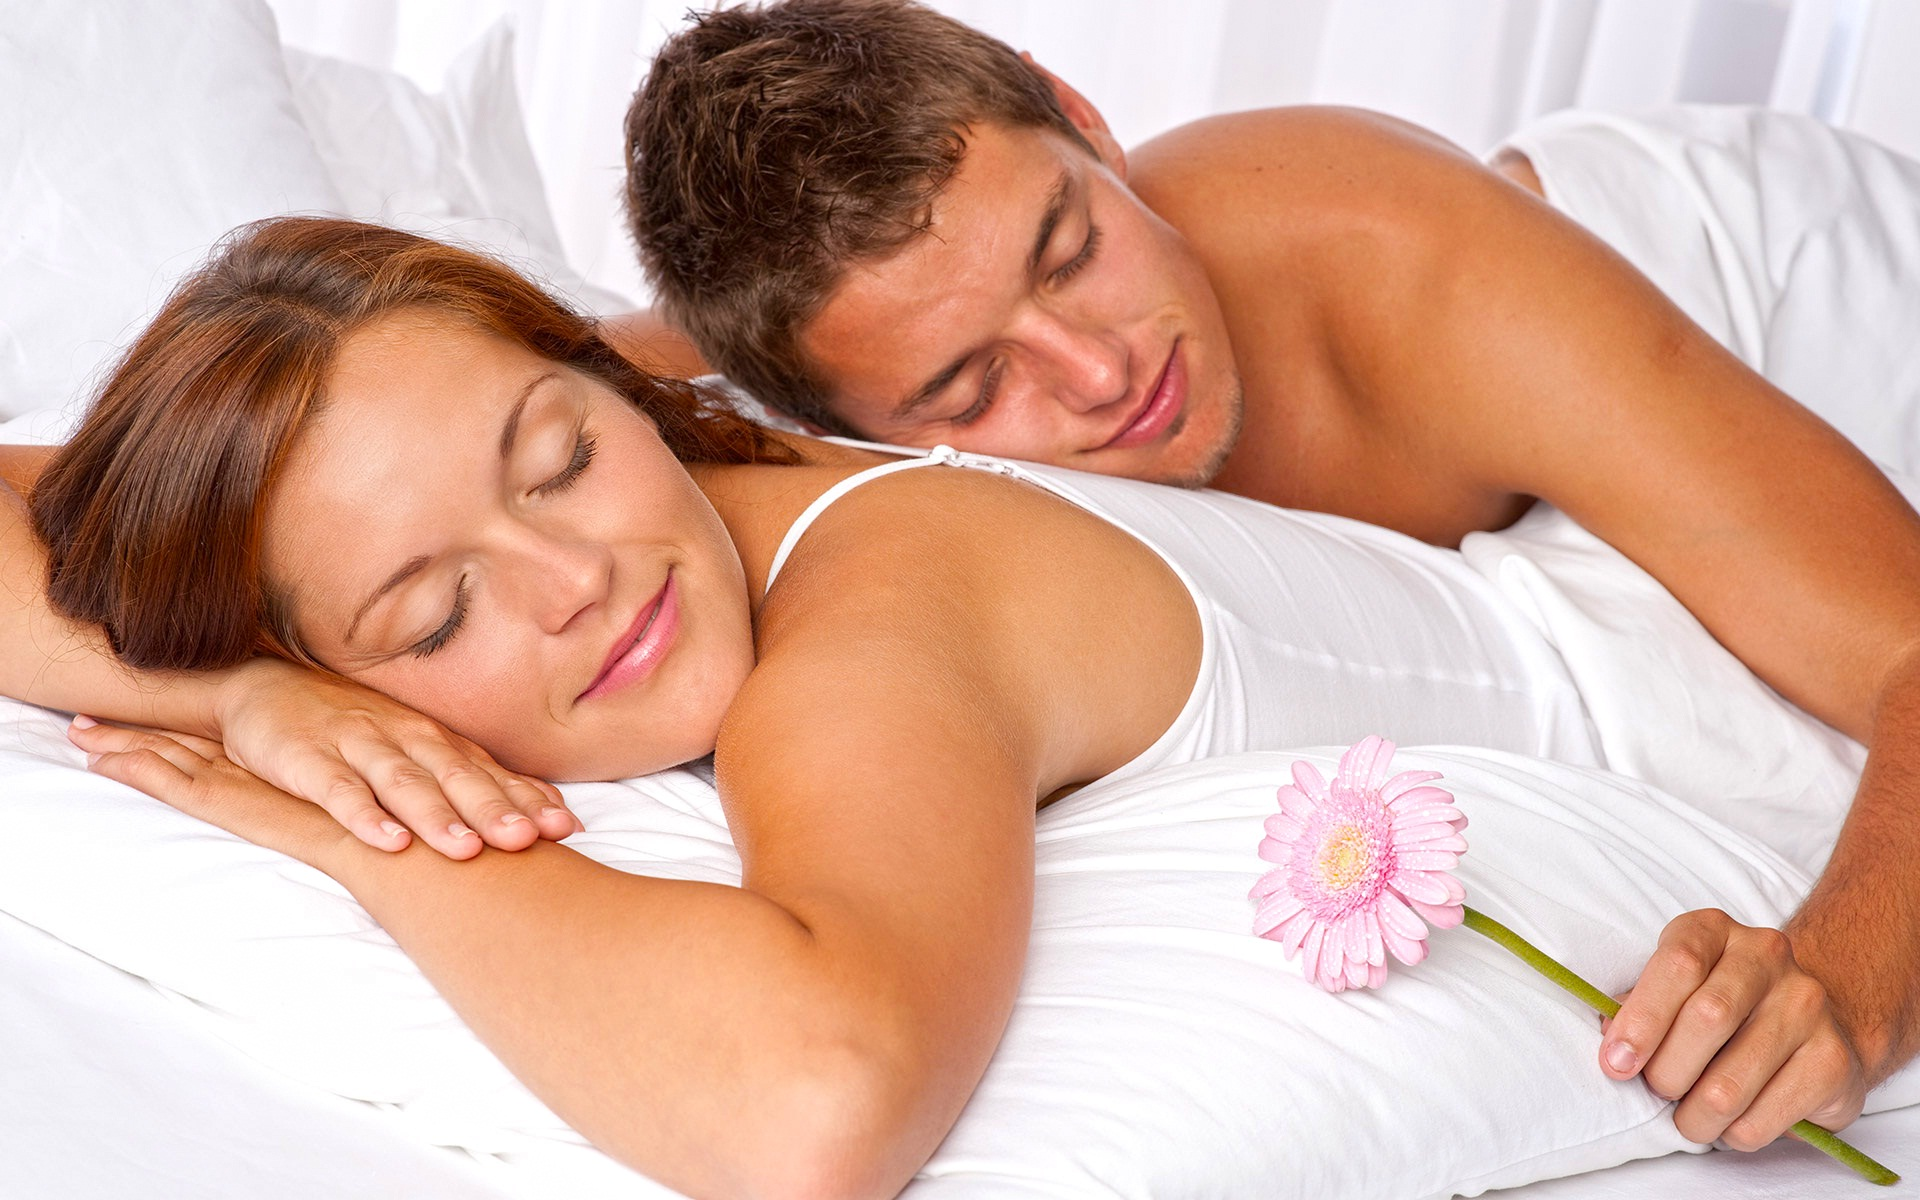 Download Romantic Couple In Bed Wallpaper Gallery